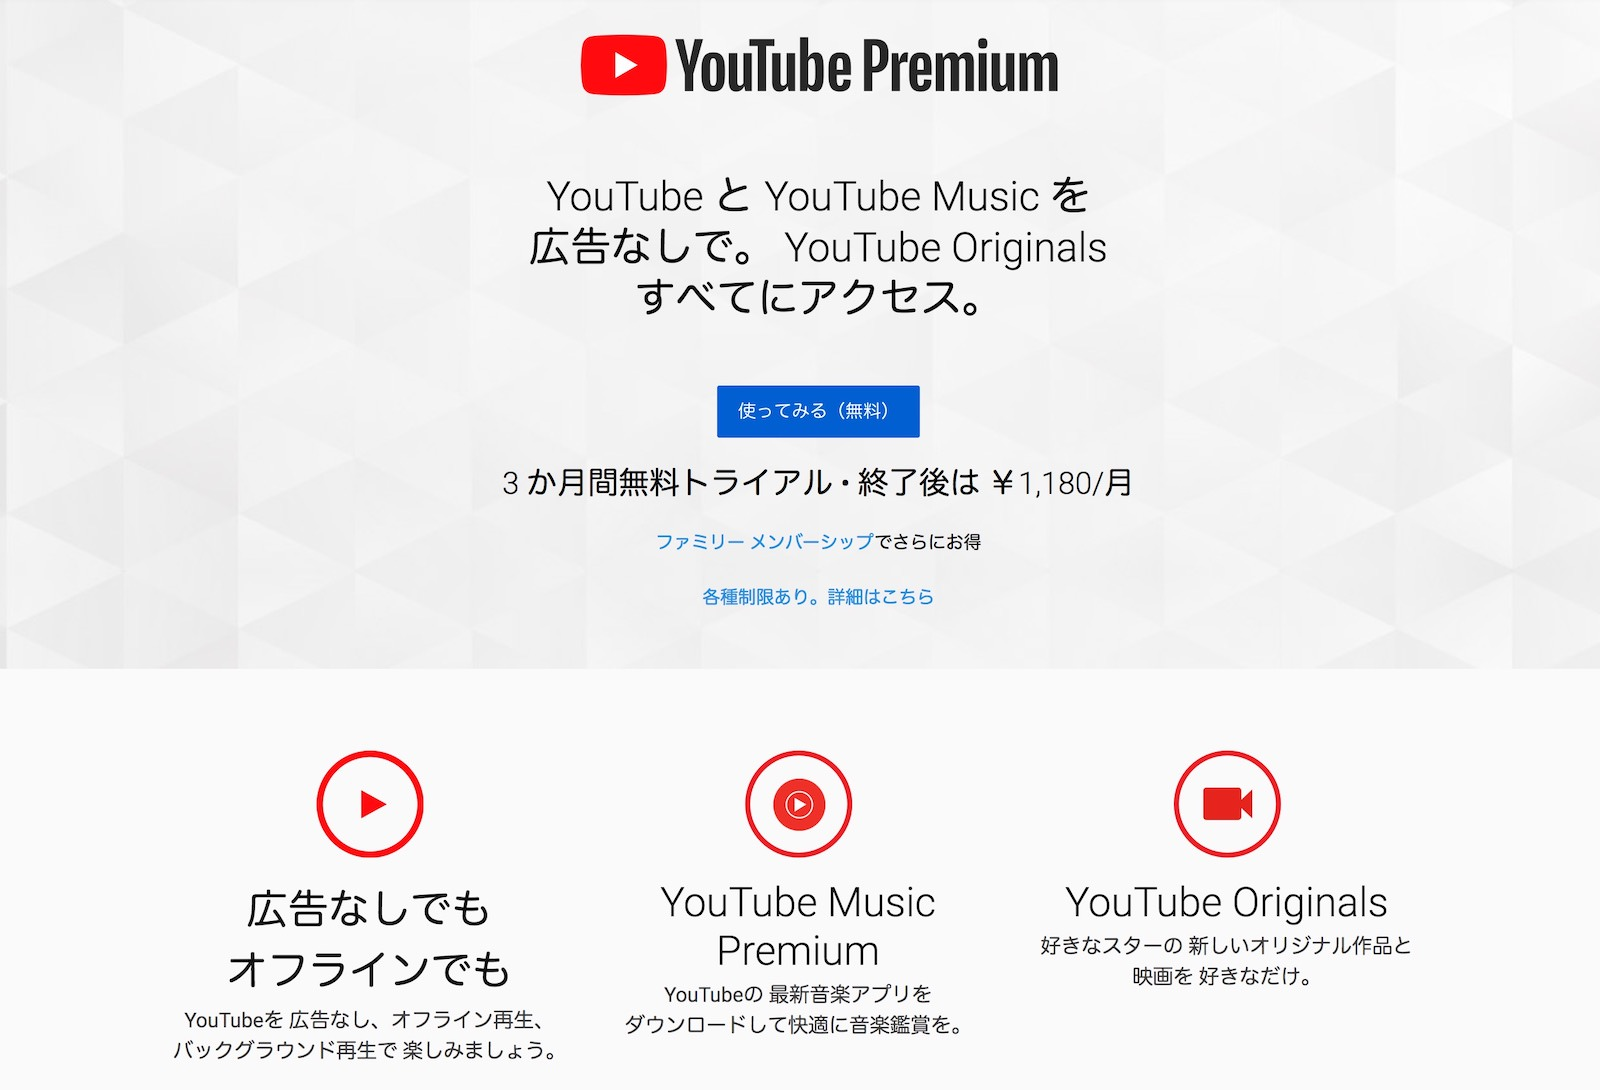 YouTube Premium To Japan 2